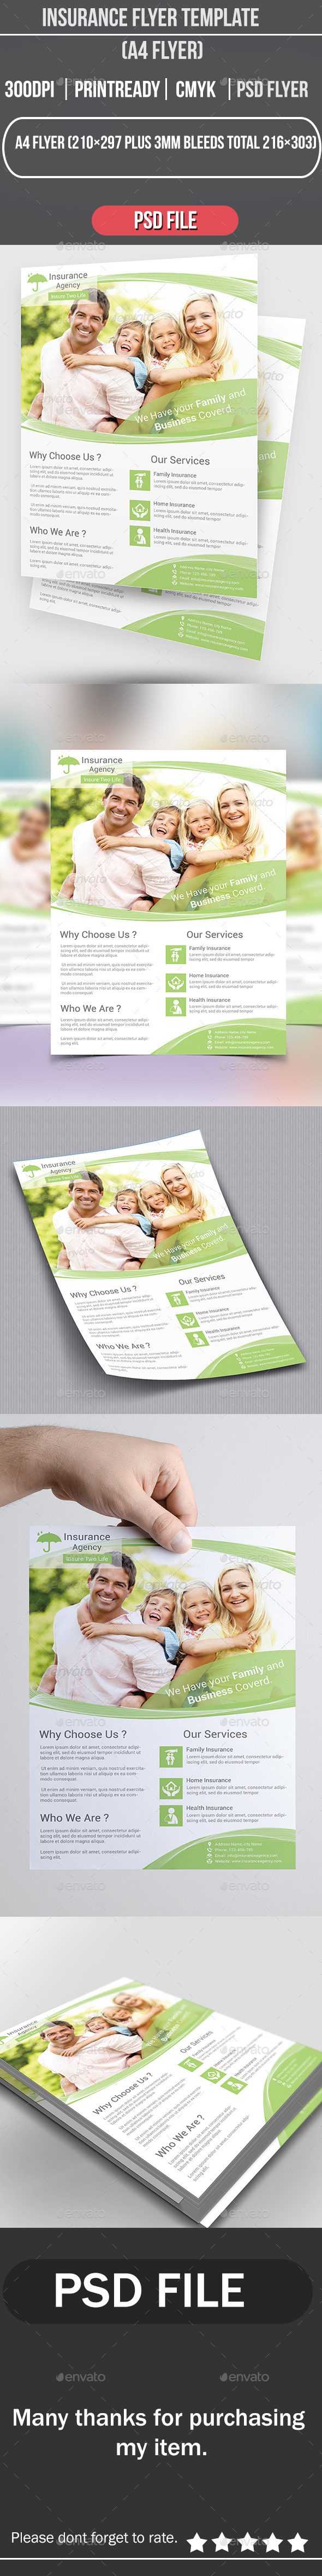 Insurance Flyer Template - Corporate Flyers